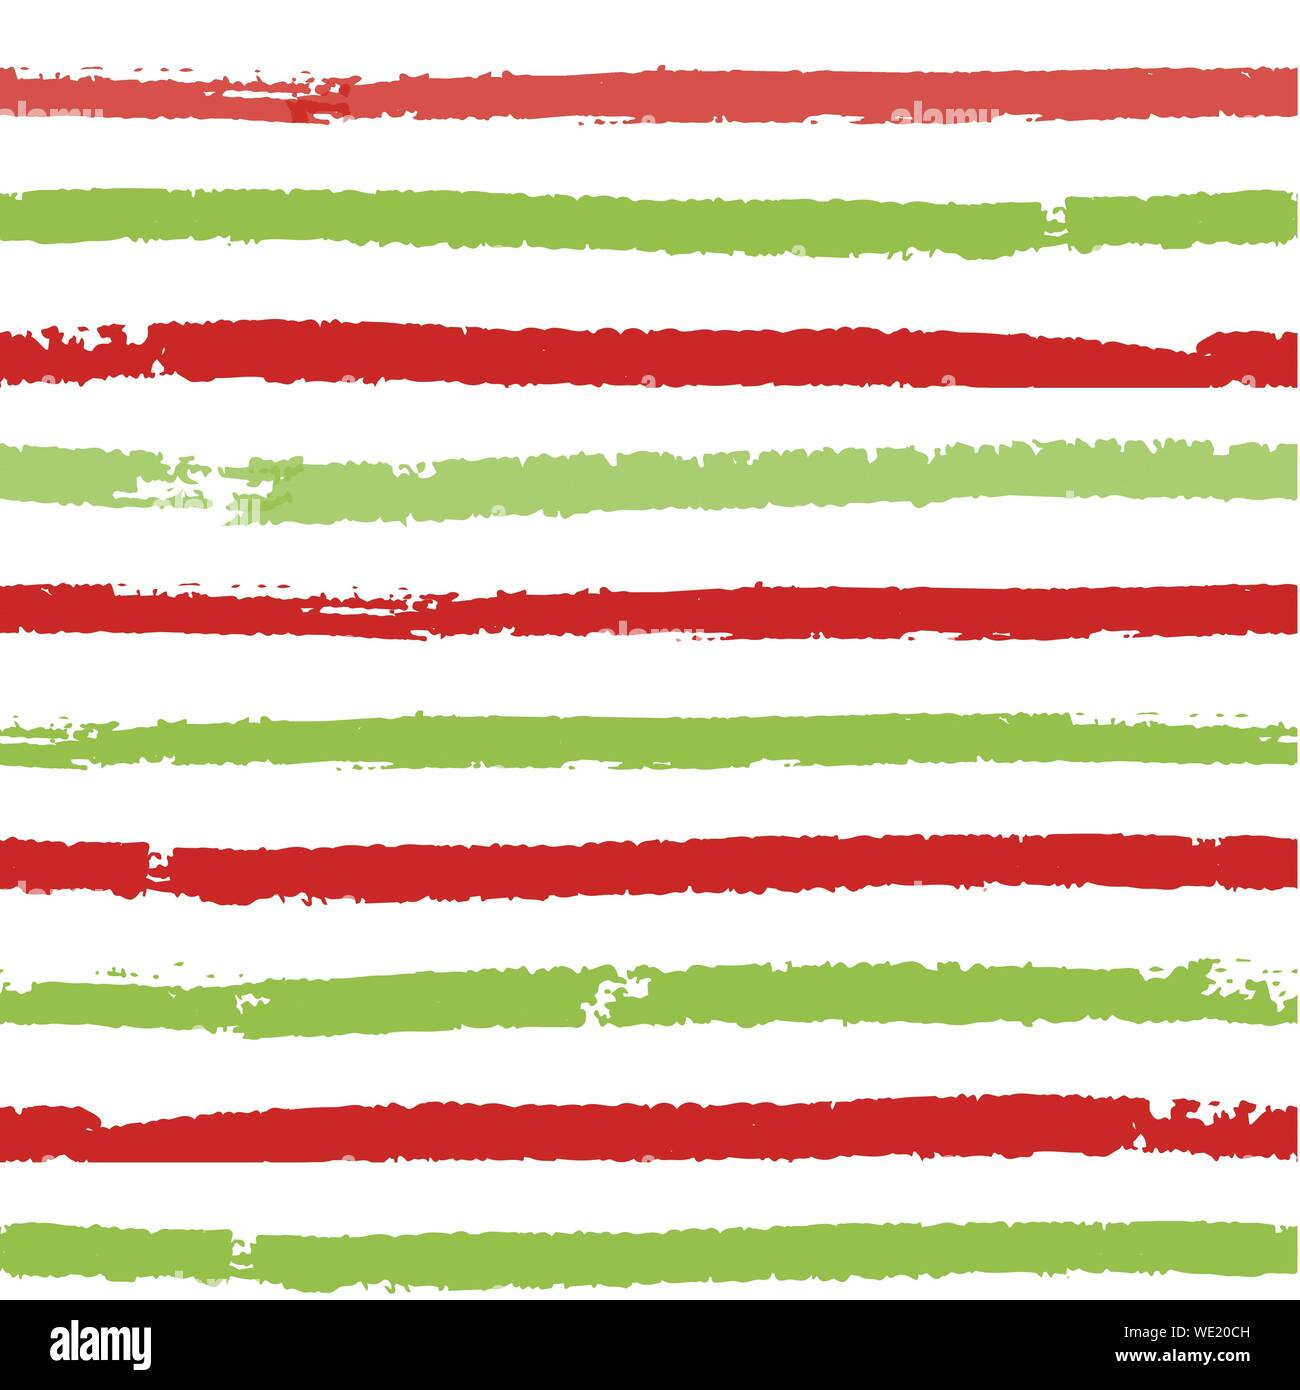 Christmas striped background. Seamless vector pattern with brush painted lines. For fashion print, wallpaper, wrapping paper, packaging, card design Stock Vector